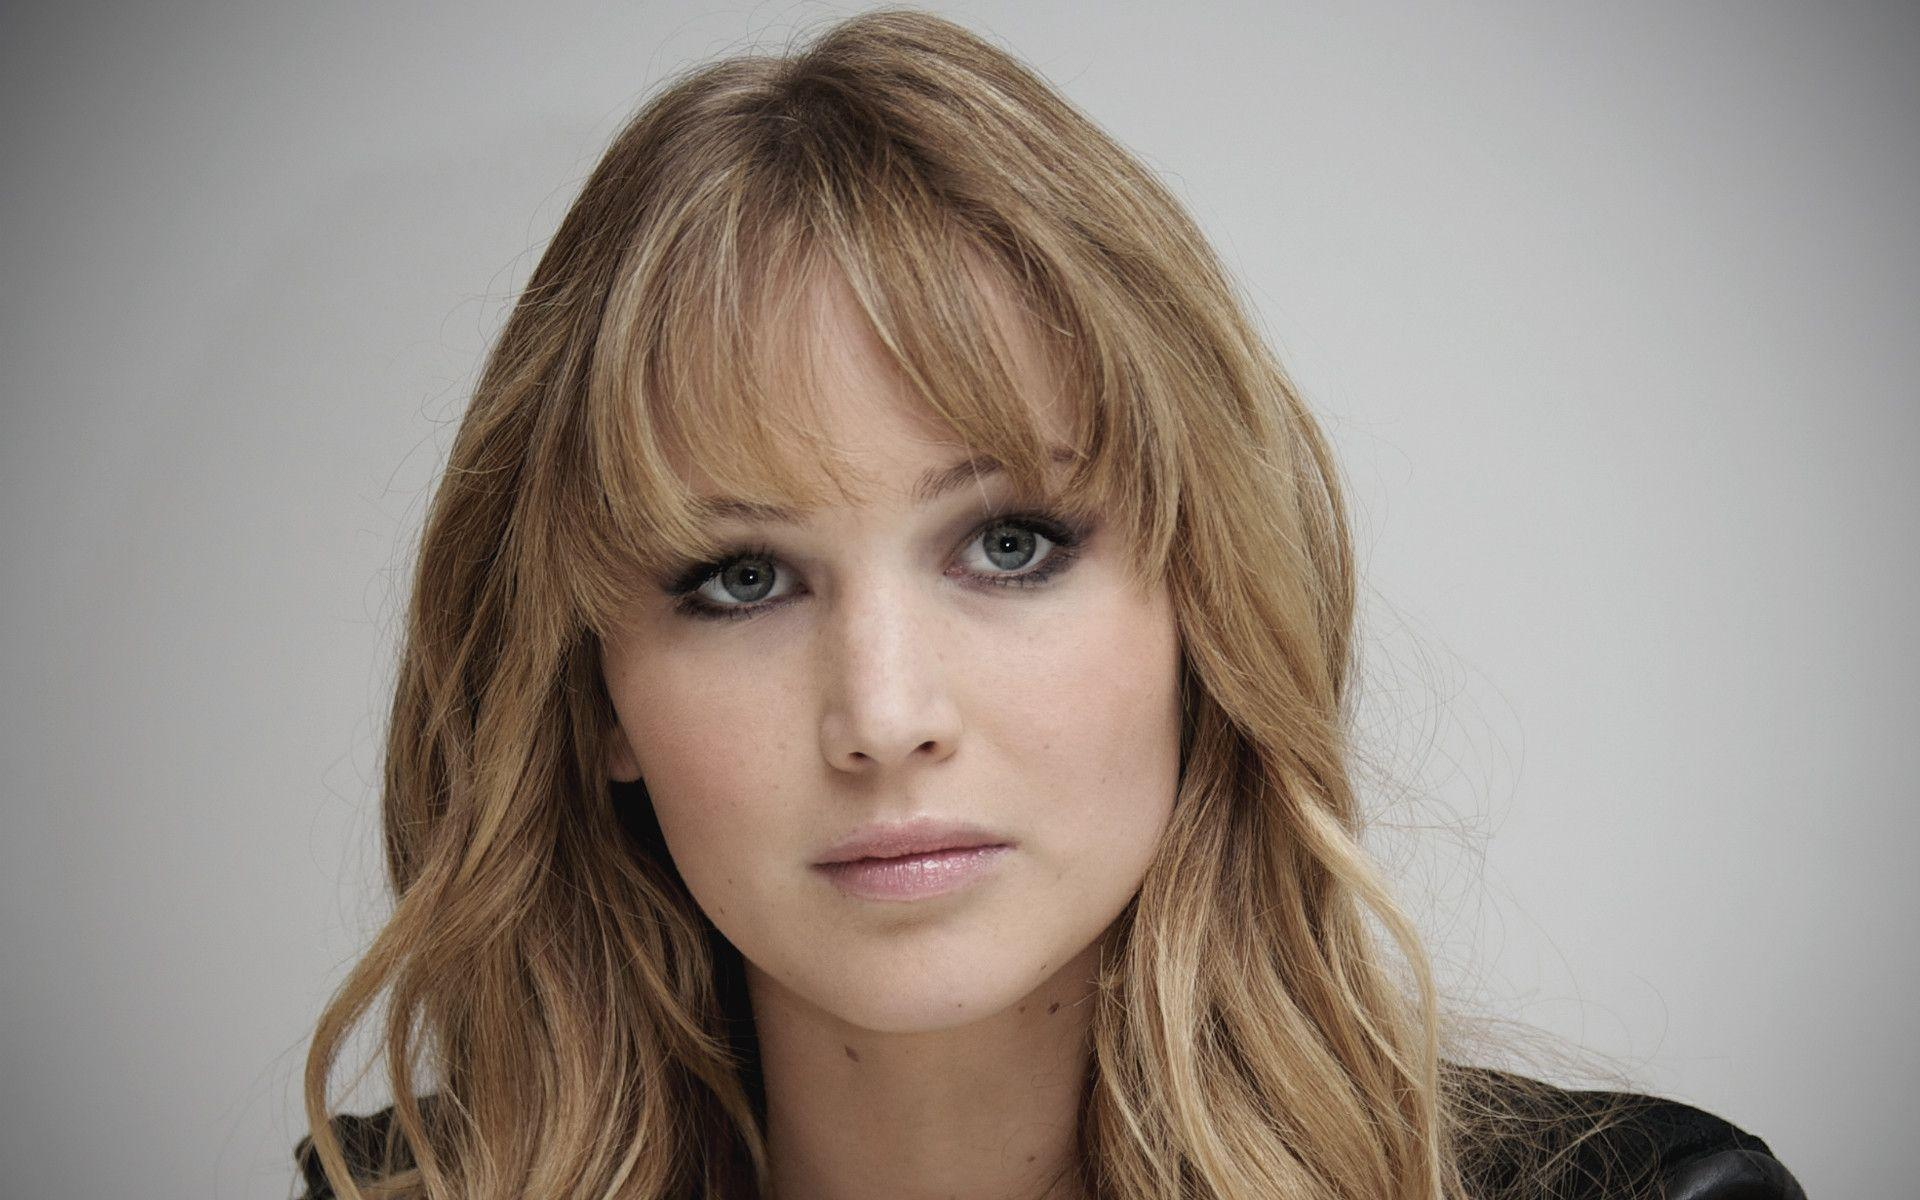 Jennifer Lawrence Exclusive HD Wallpapers #2821